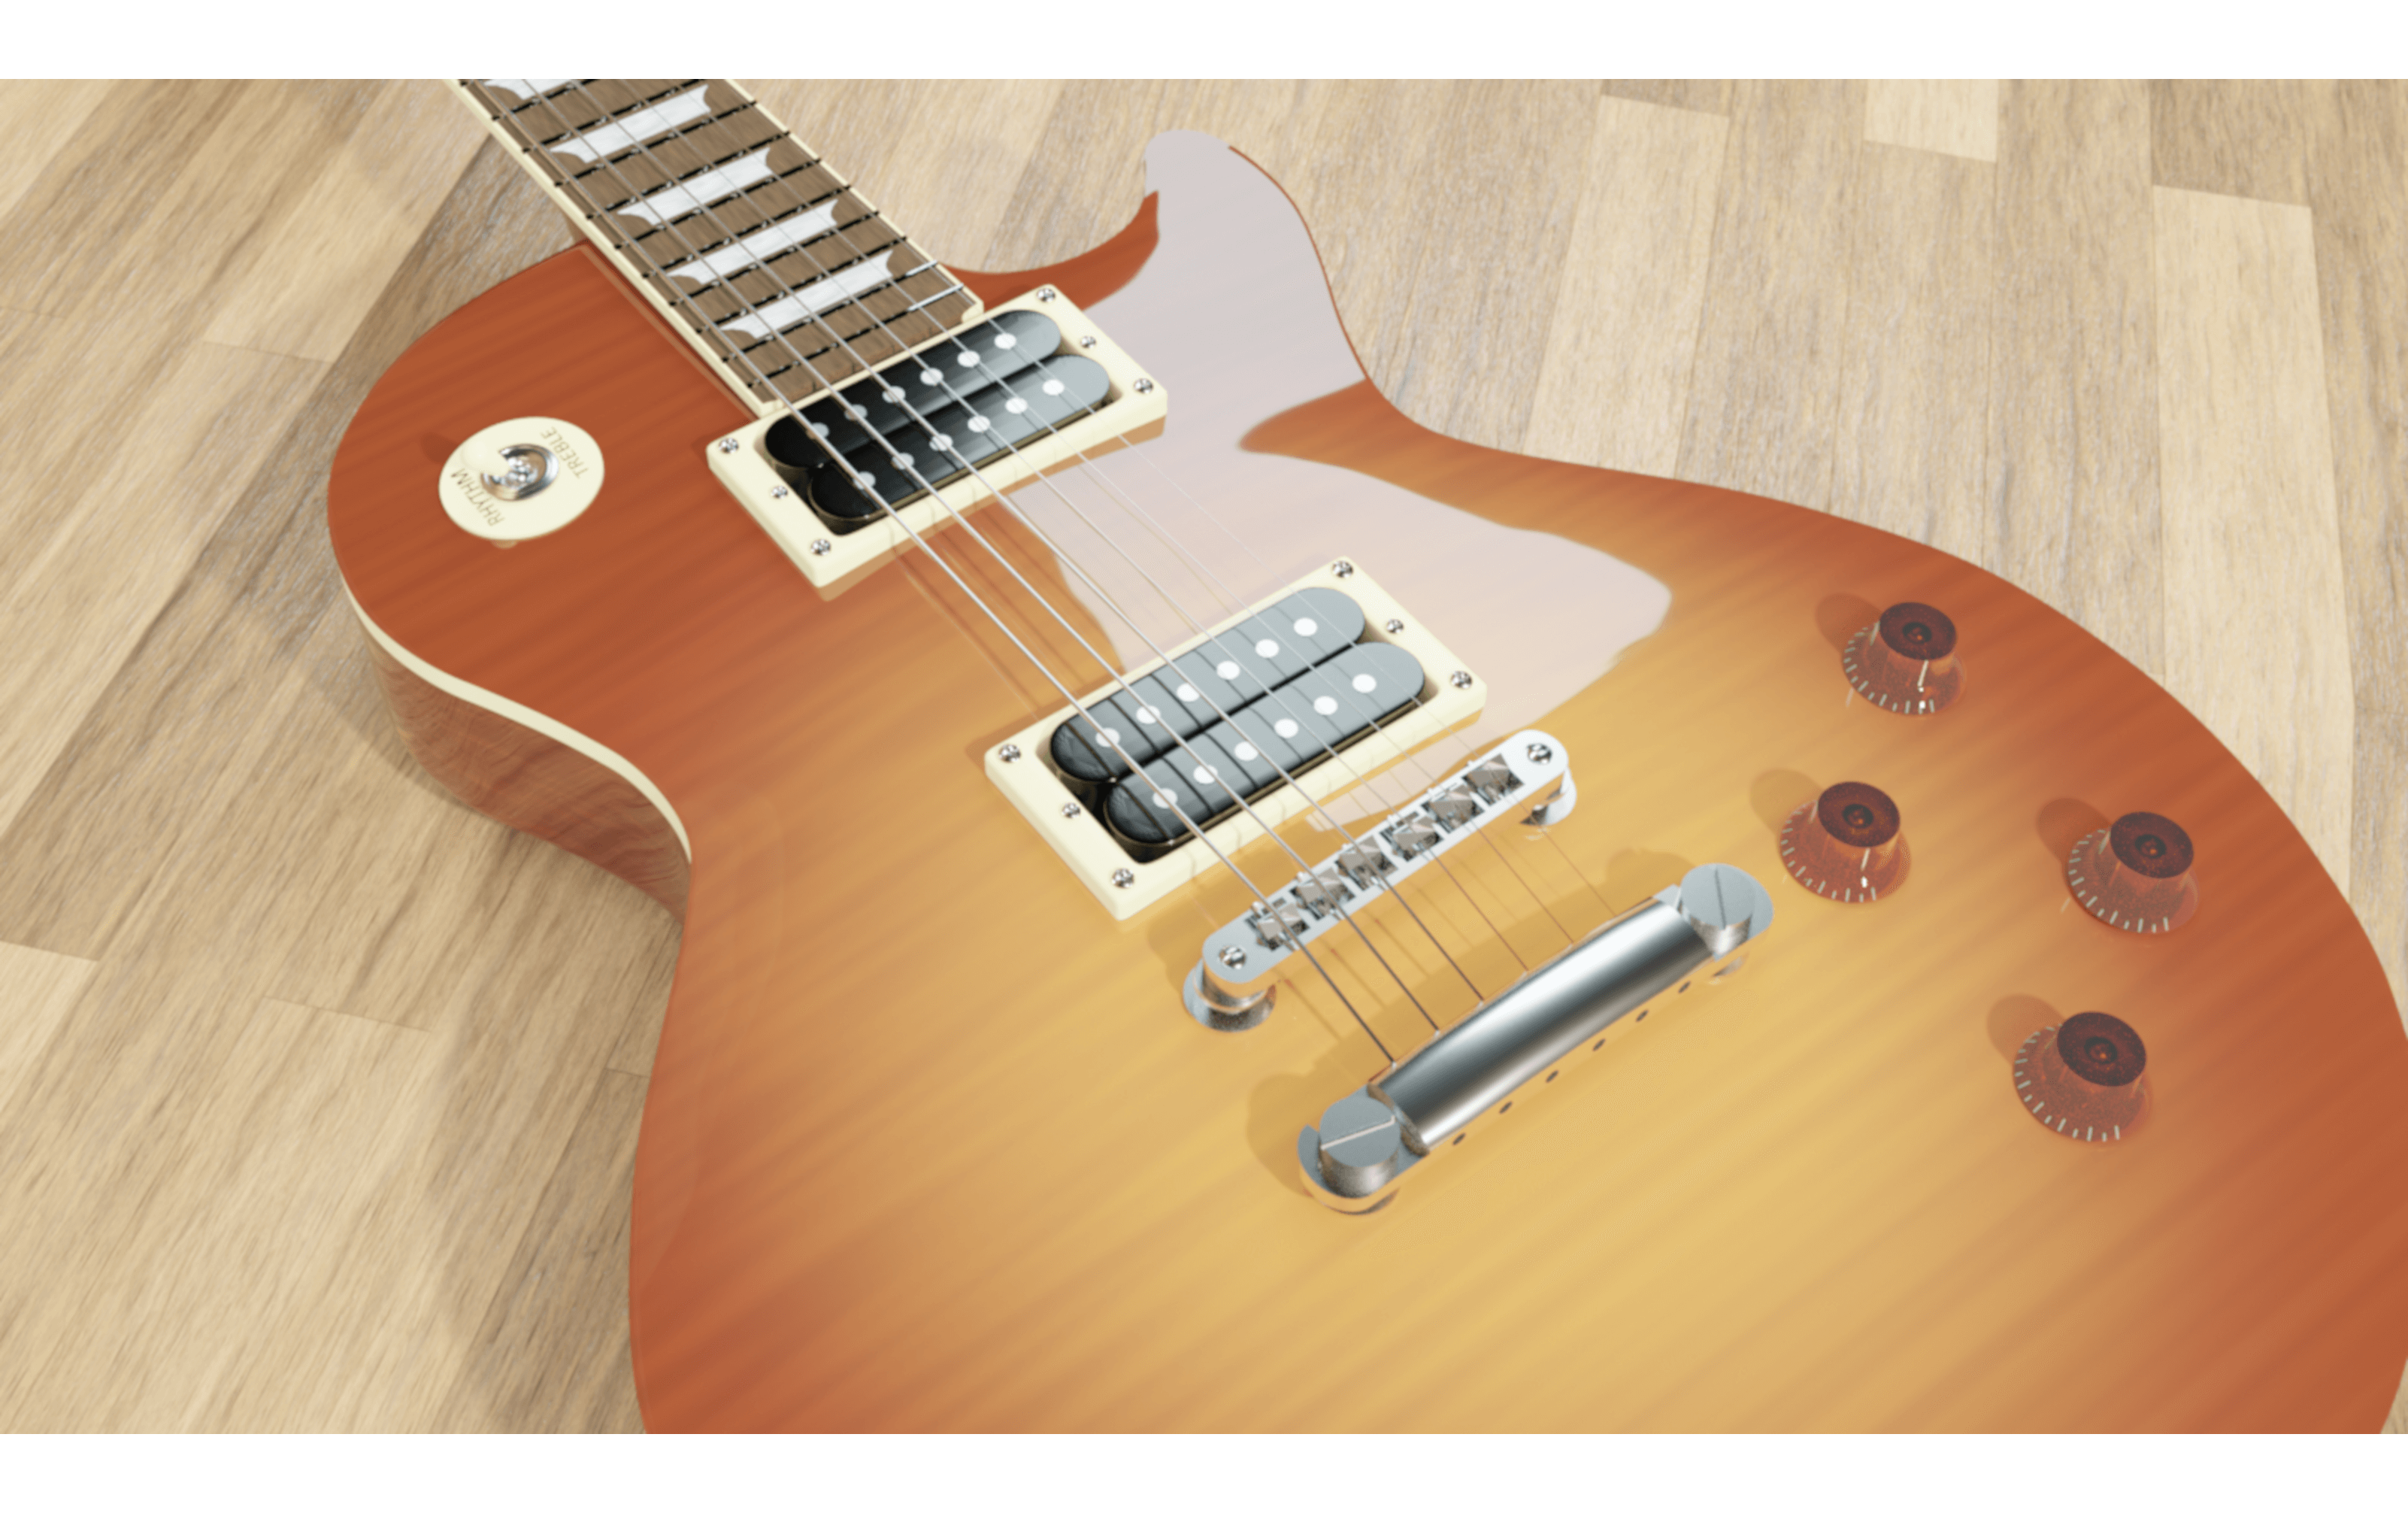 Modeled Guitar